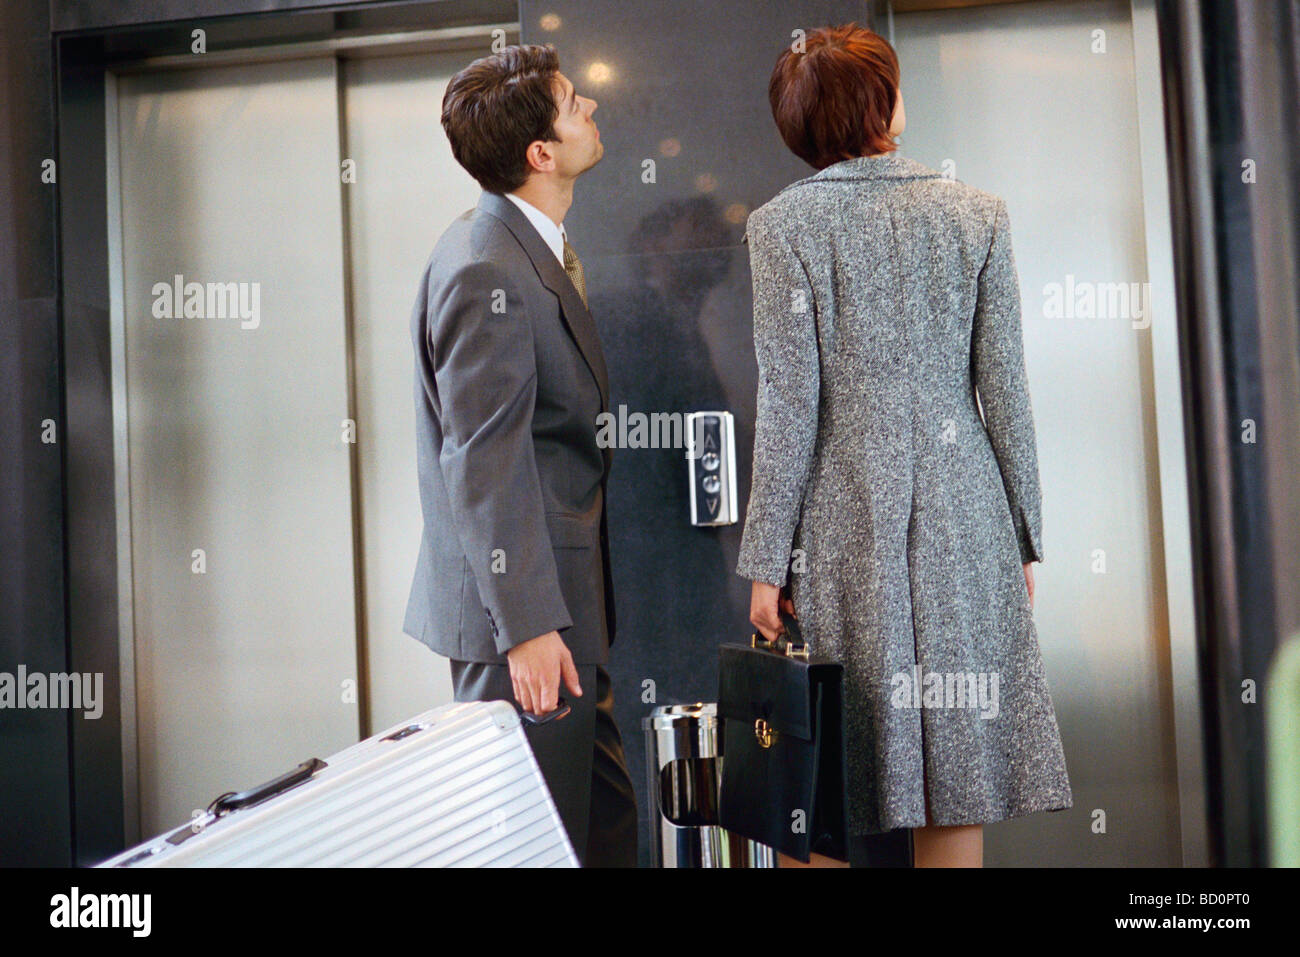 Business associates waiting for elevator - Stock Image